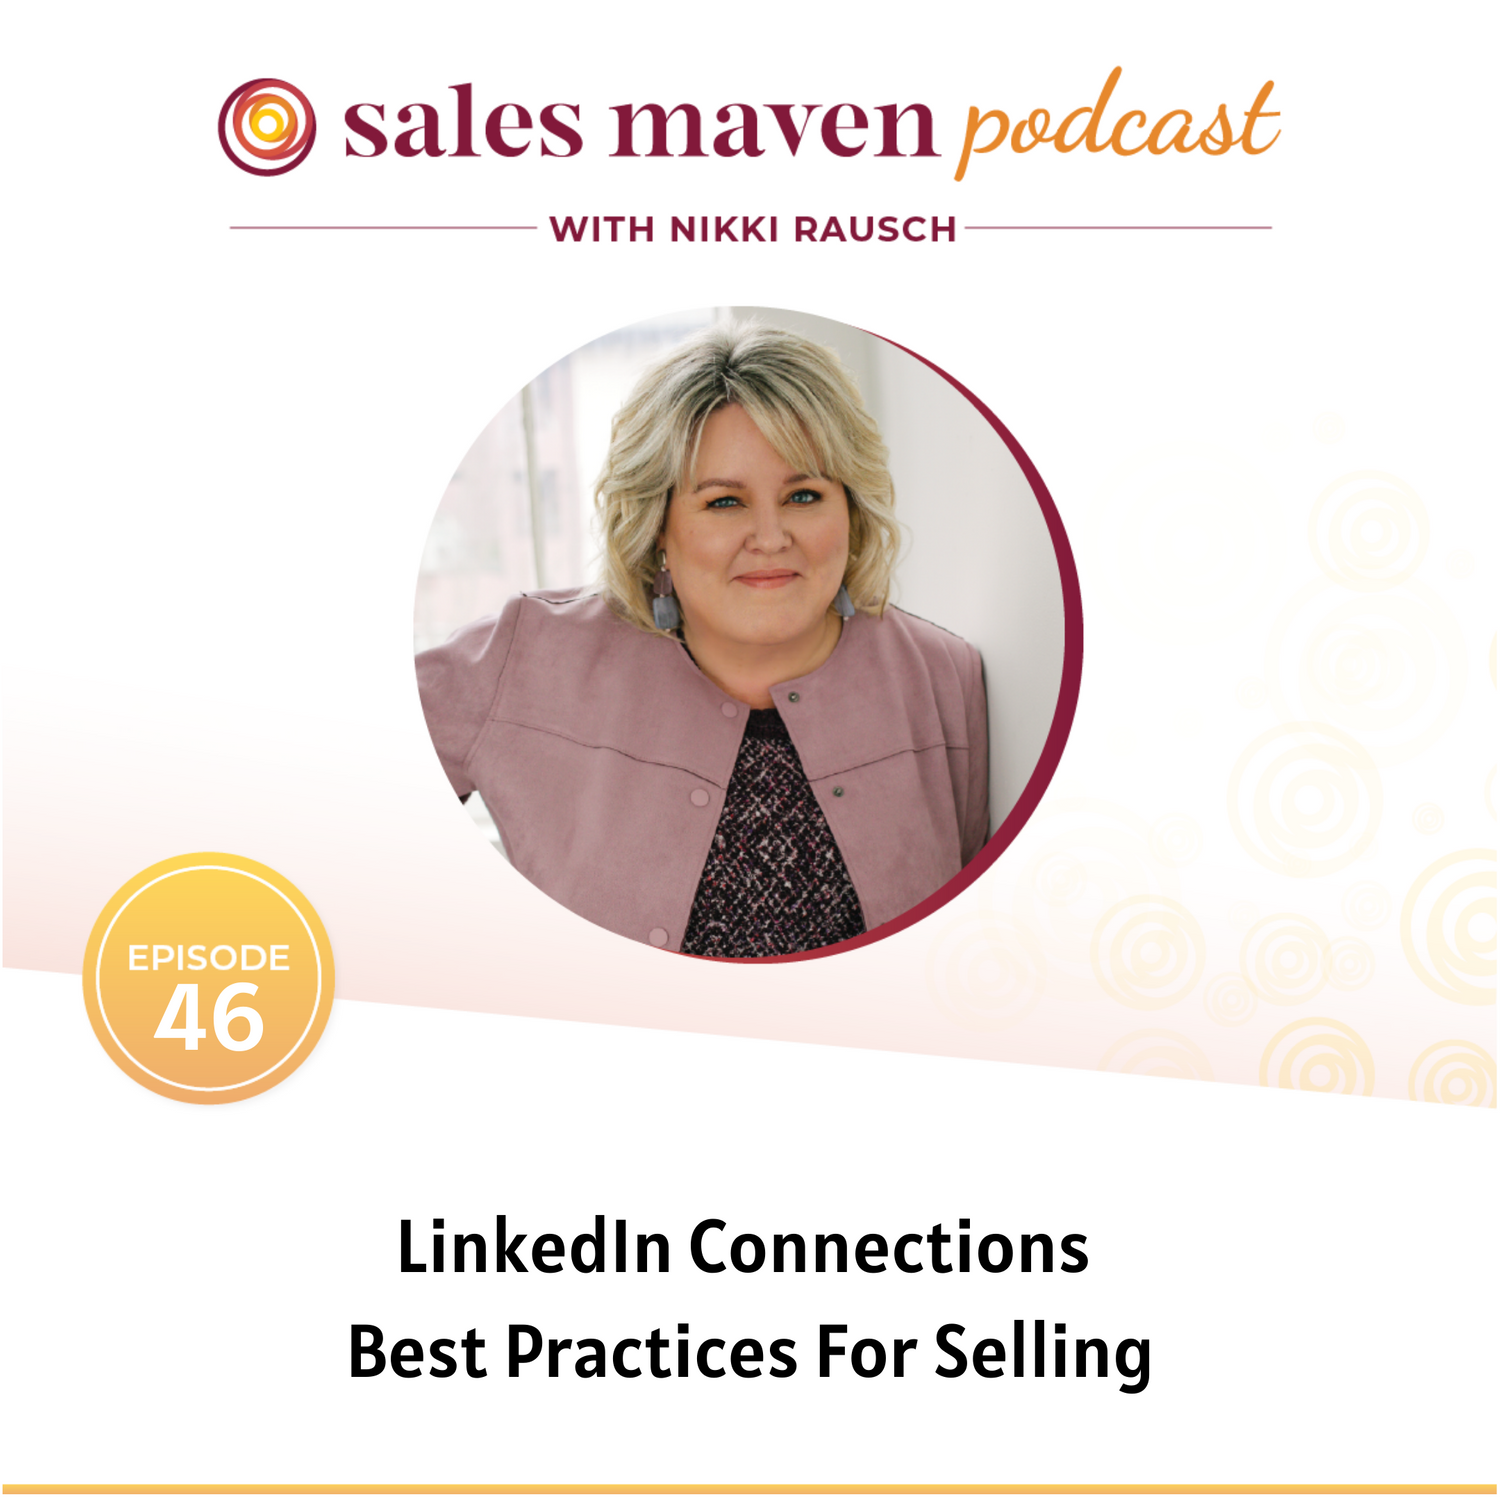 Sales Maven Podcast - Linkedin Connections best practices for selling